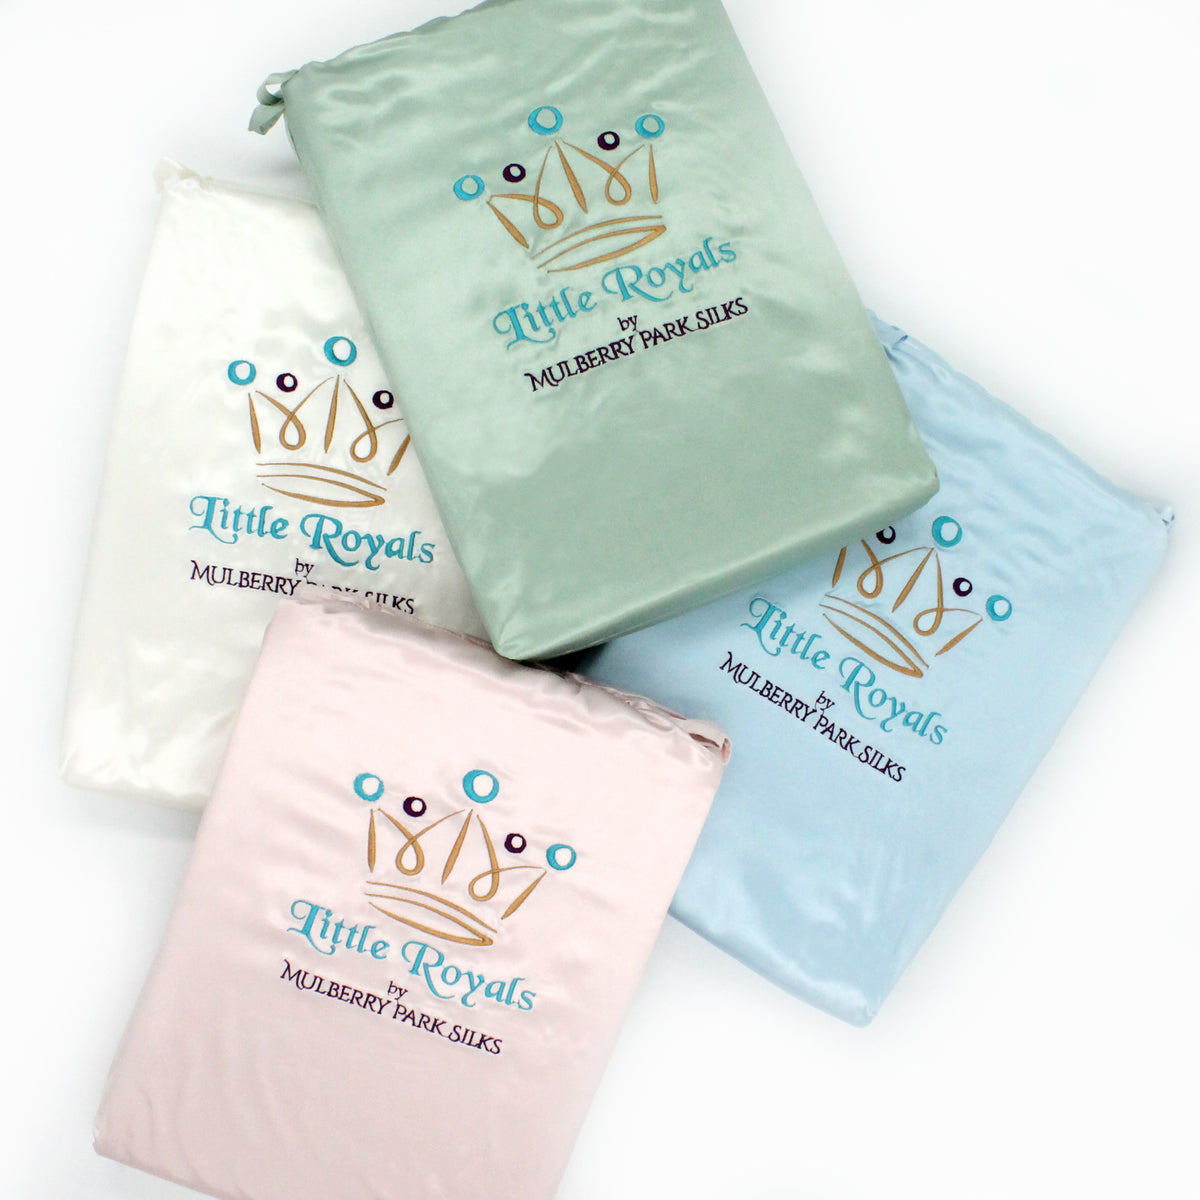 Little Royals Twin Silk Sheet sets by Mulberry Park Silks